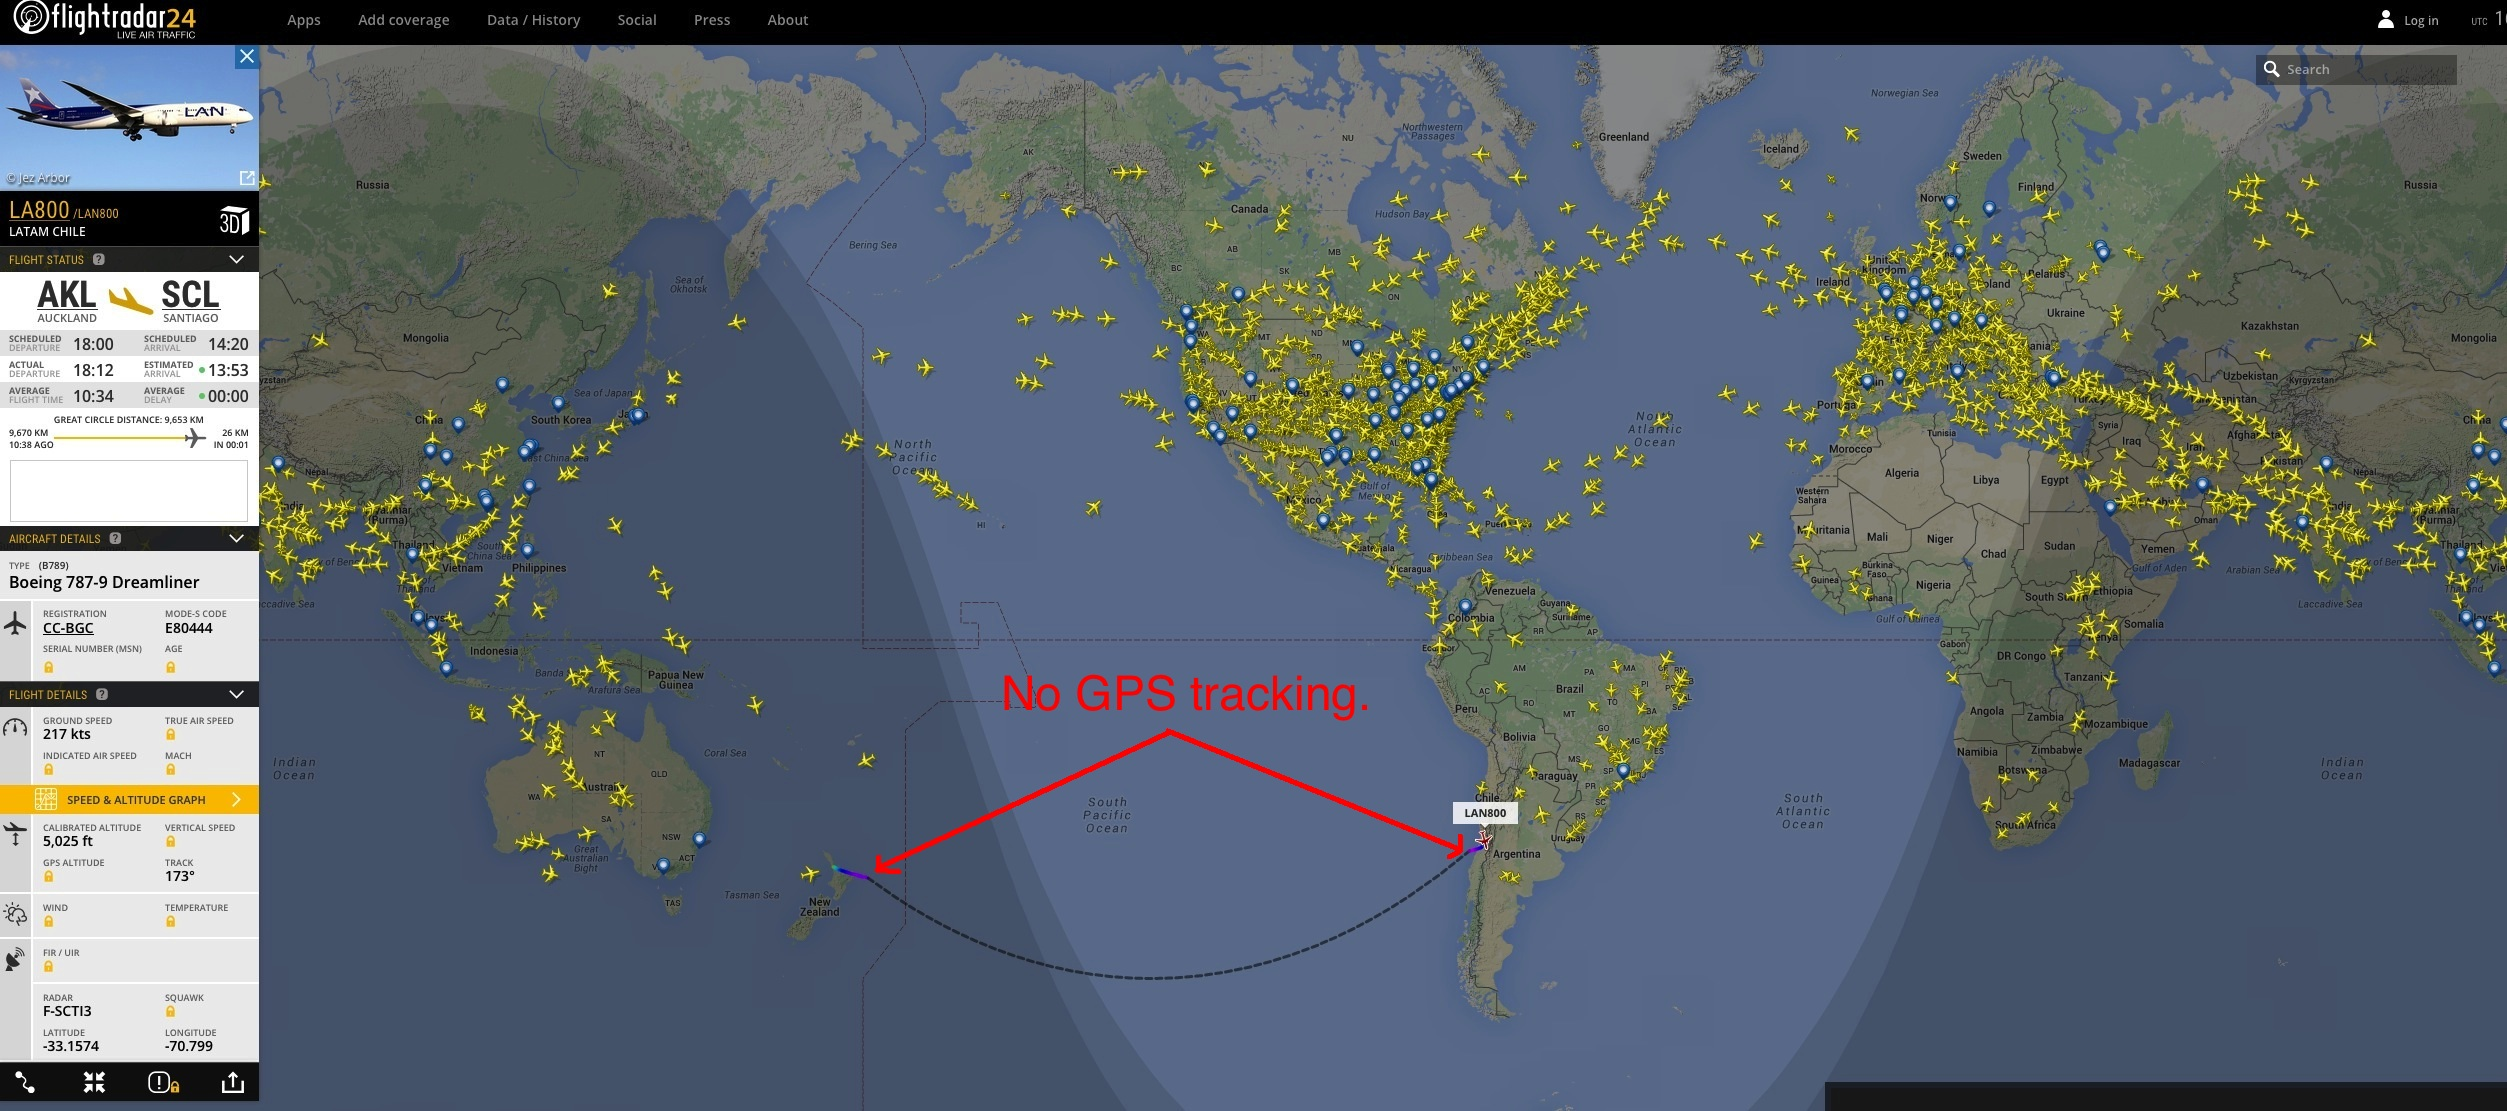 Flat earth theory debunked by short flights qf27 qf28 from above the equator the oversea flights are well tracked gumiabroncs Images